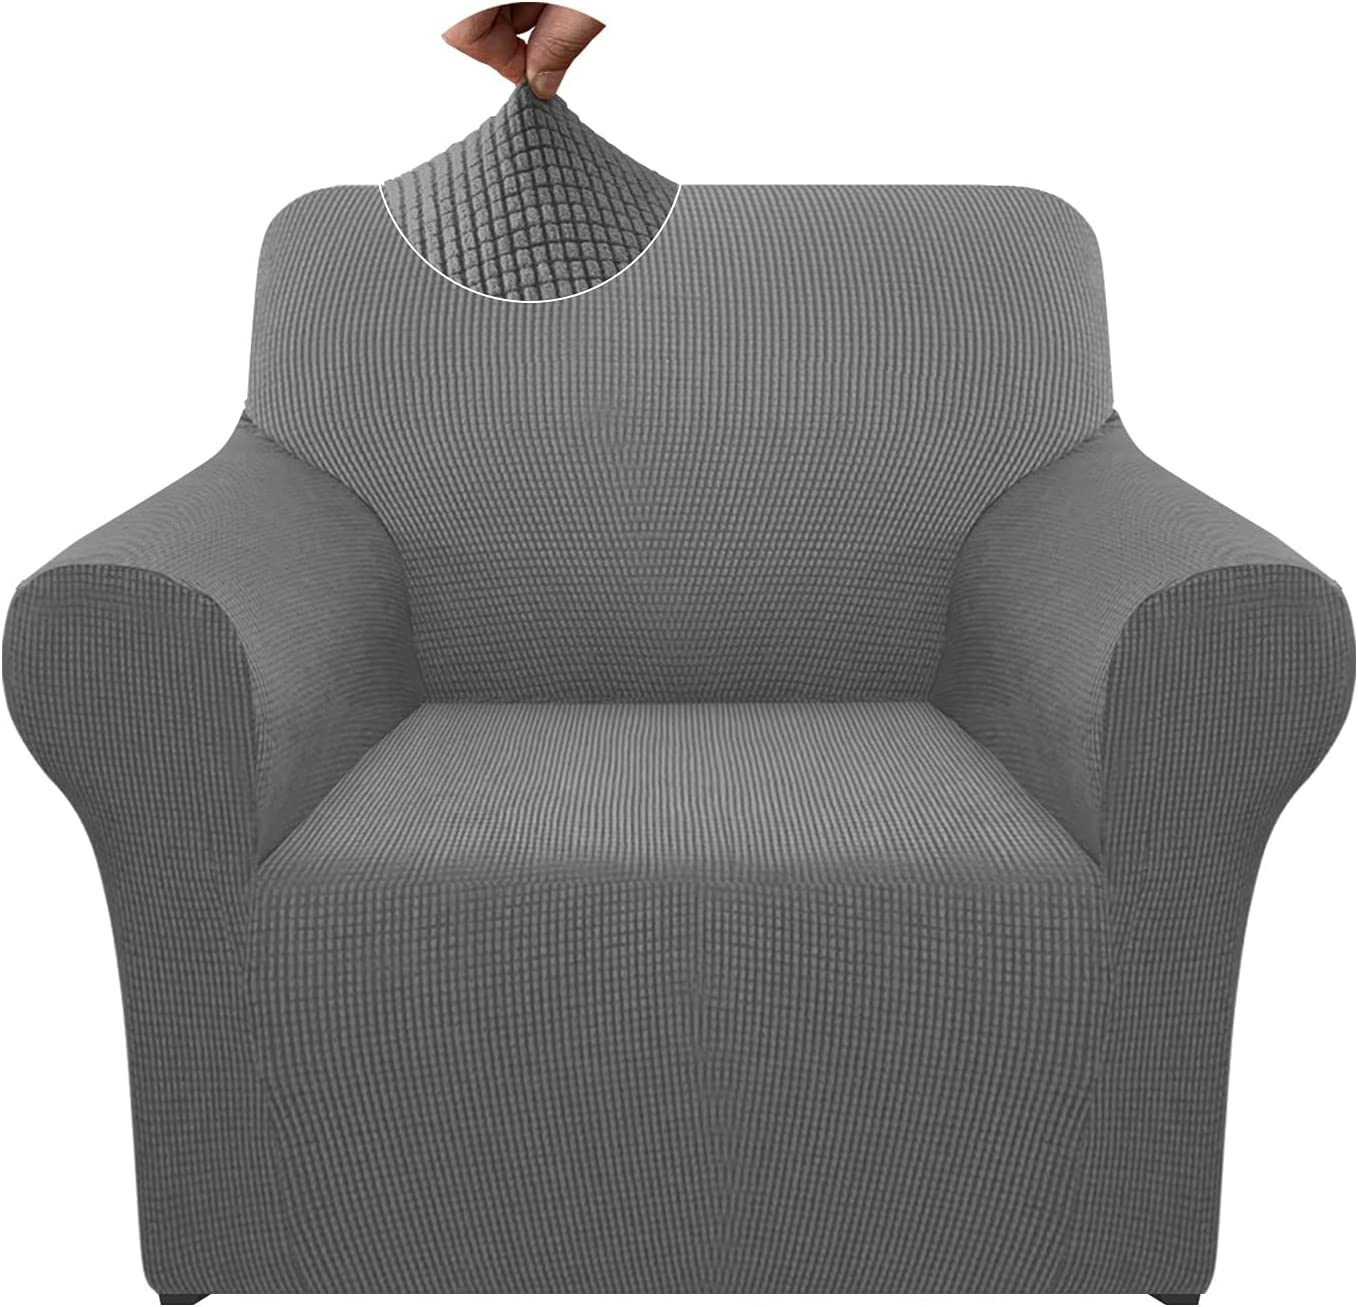 Pepibear High Stretch Armchair Cover 1 Piece Super Soft Thick Chair Cover Non Slip Sofa Slipcover Furniture Proctor with Foams and Elastic Bottom (Small, Light Gray)